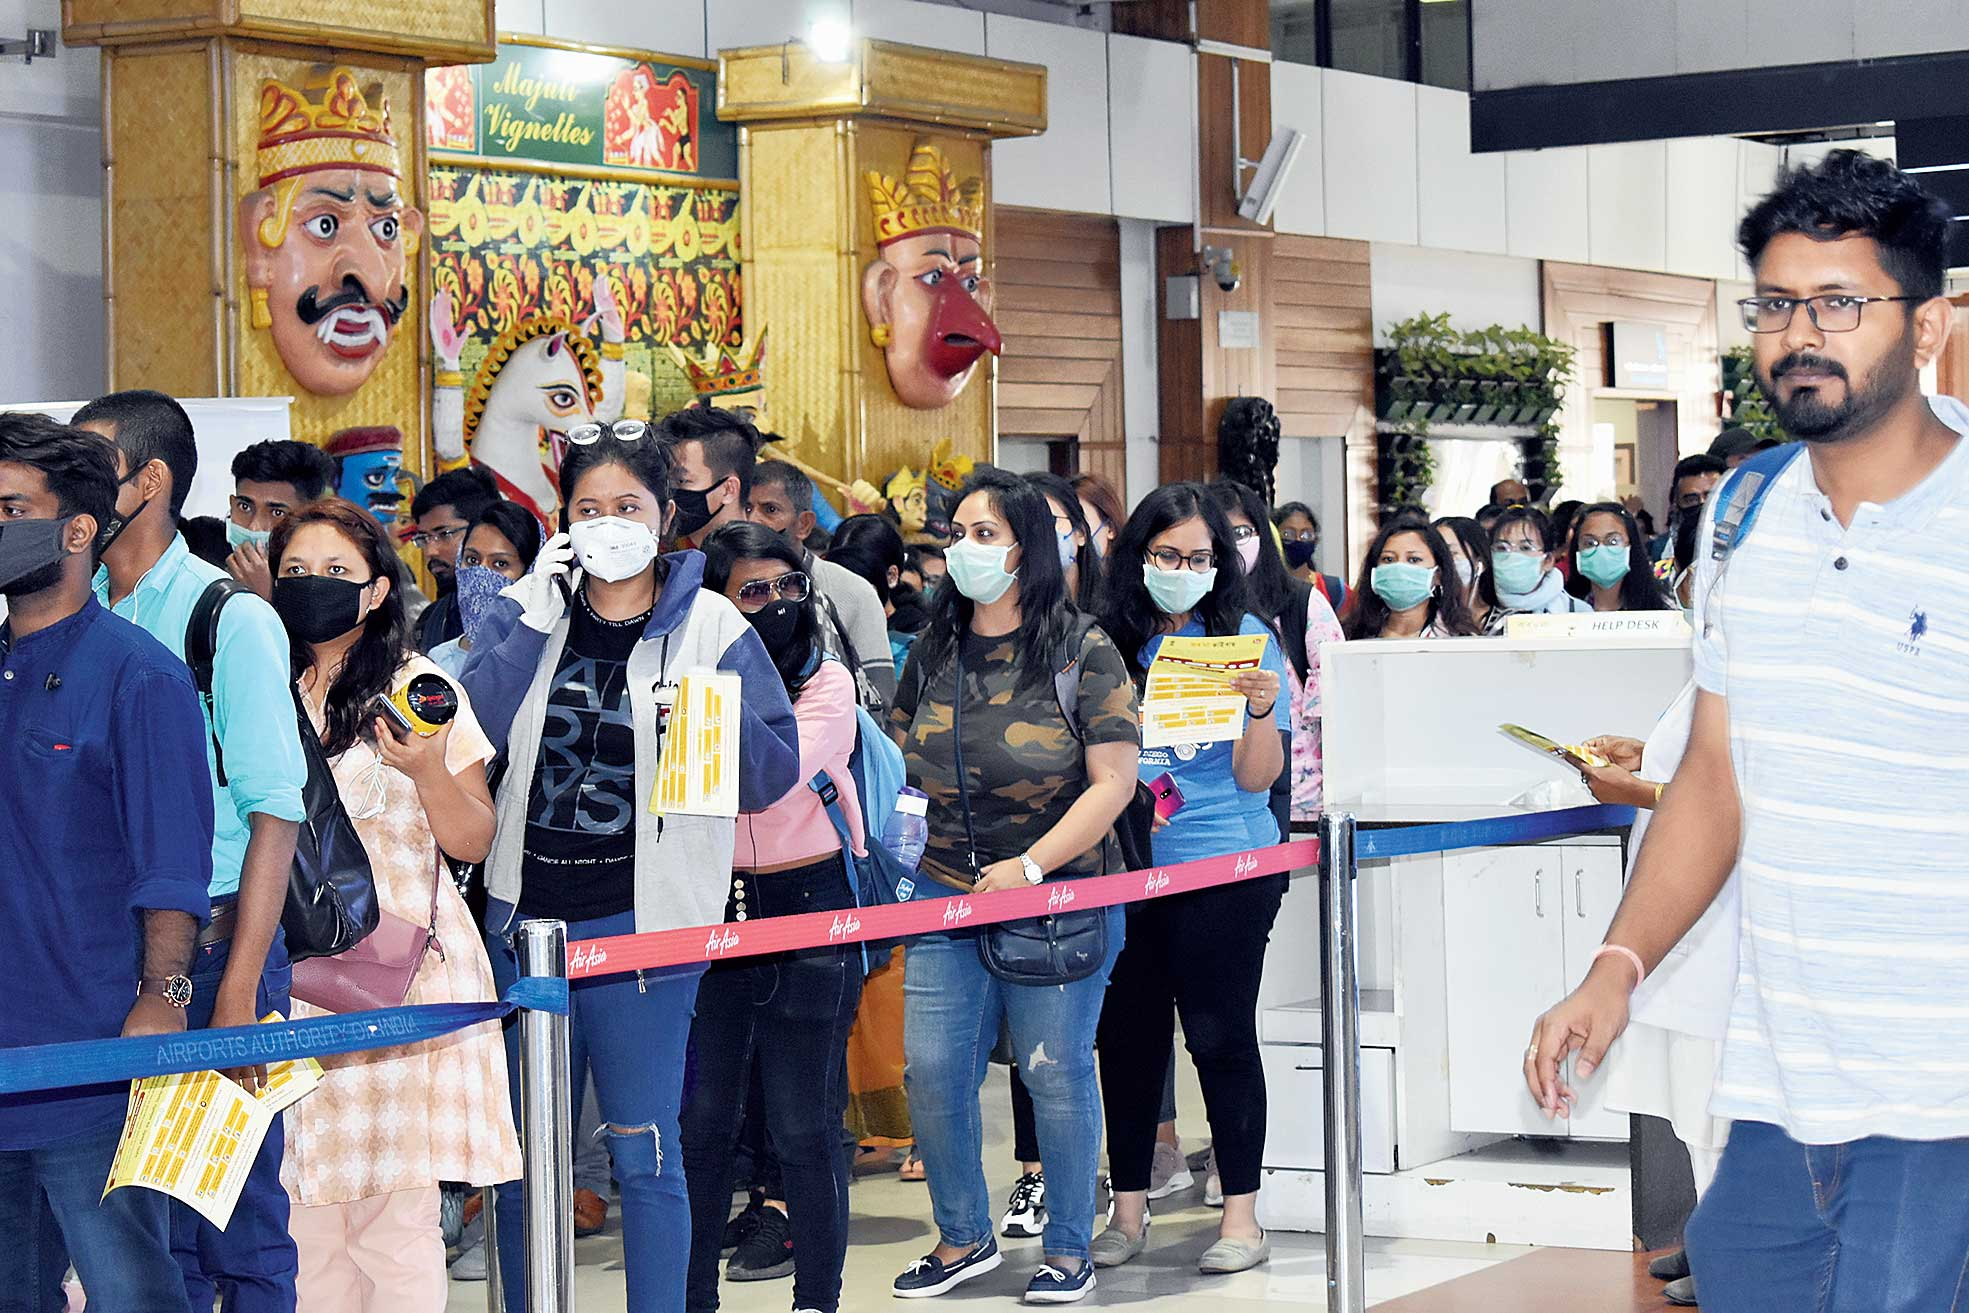 Passengers in queue for a health screening at the Guwahati airport.